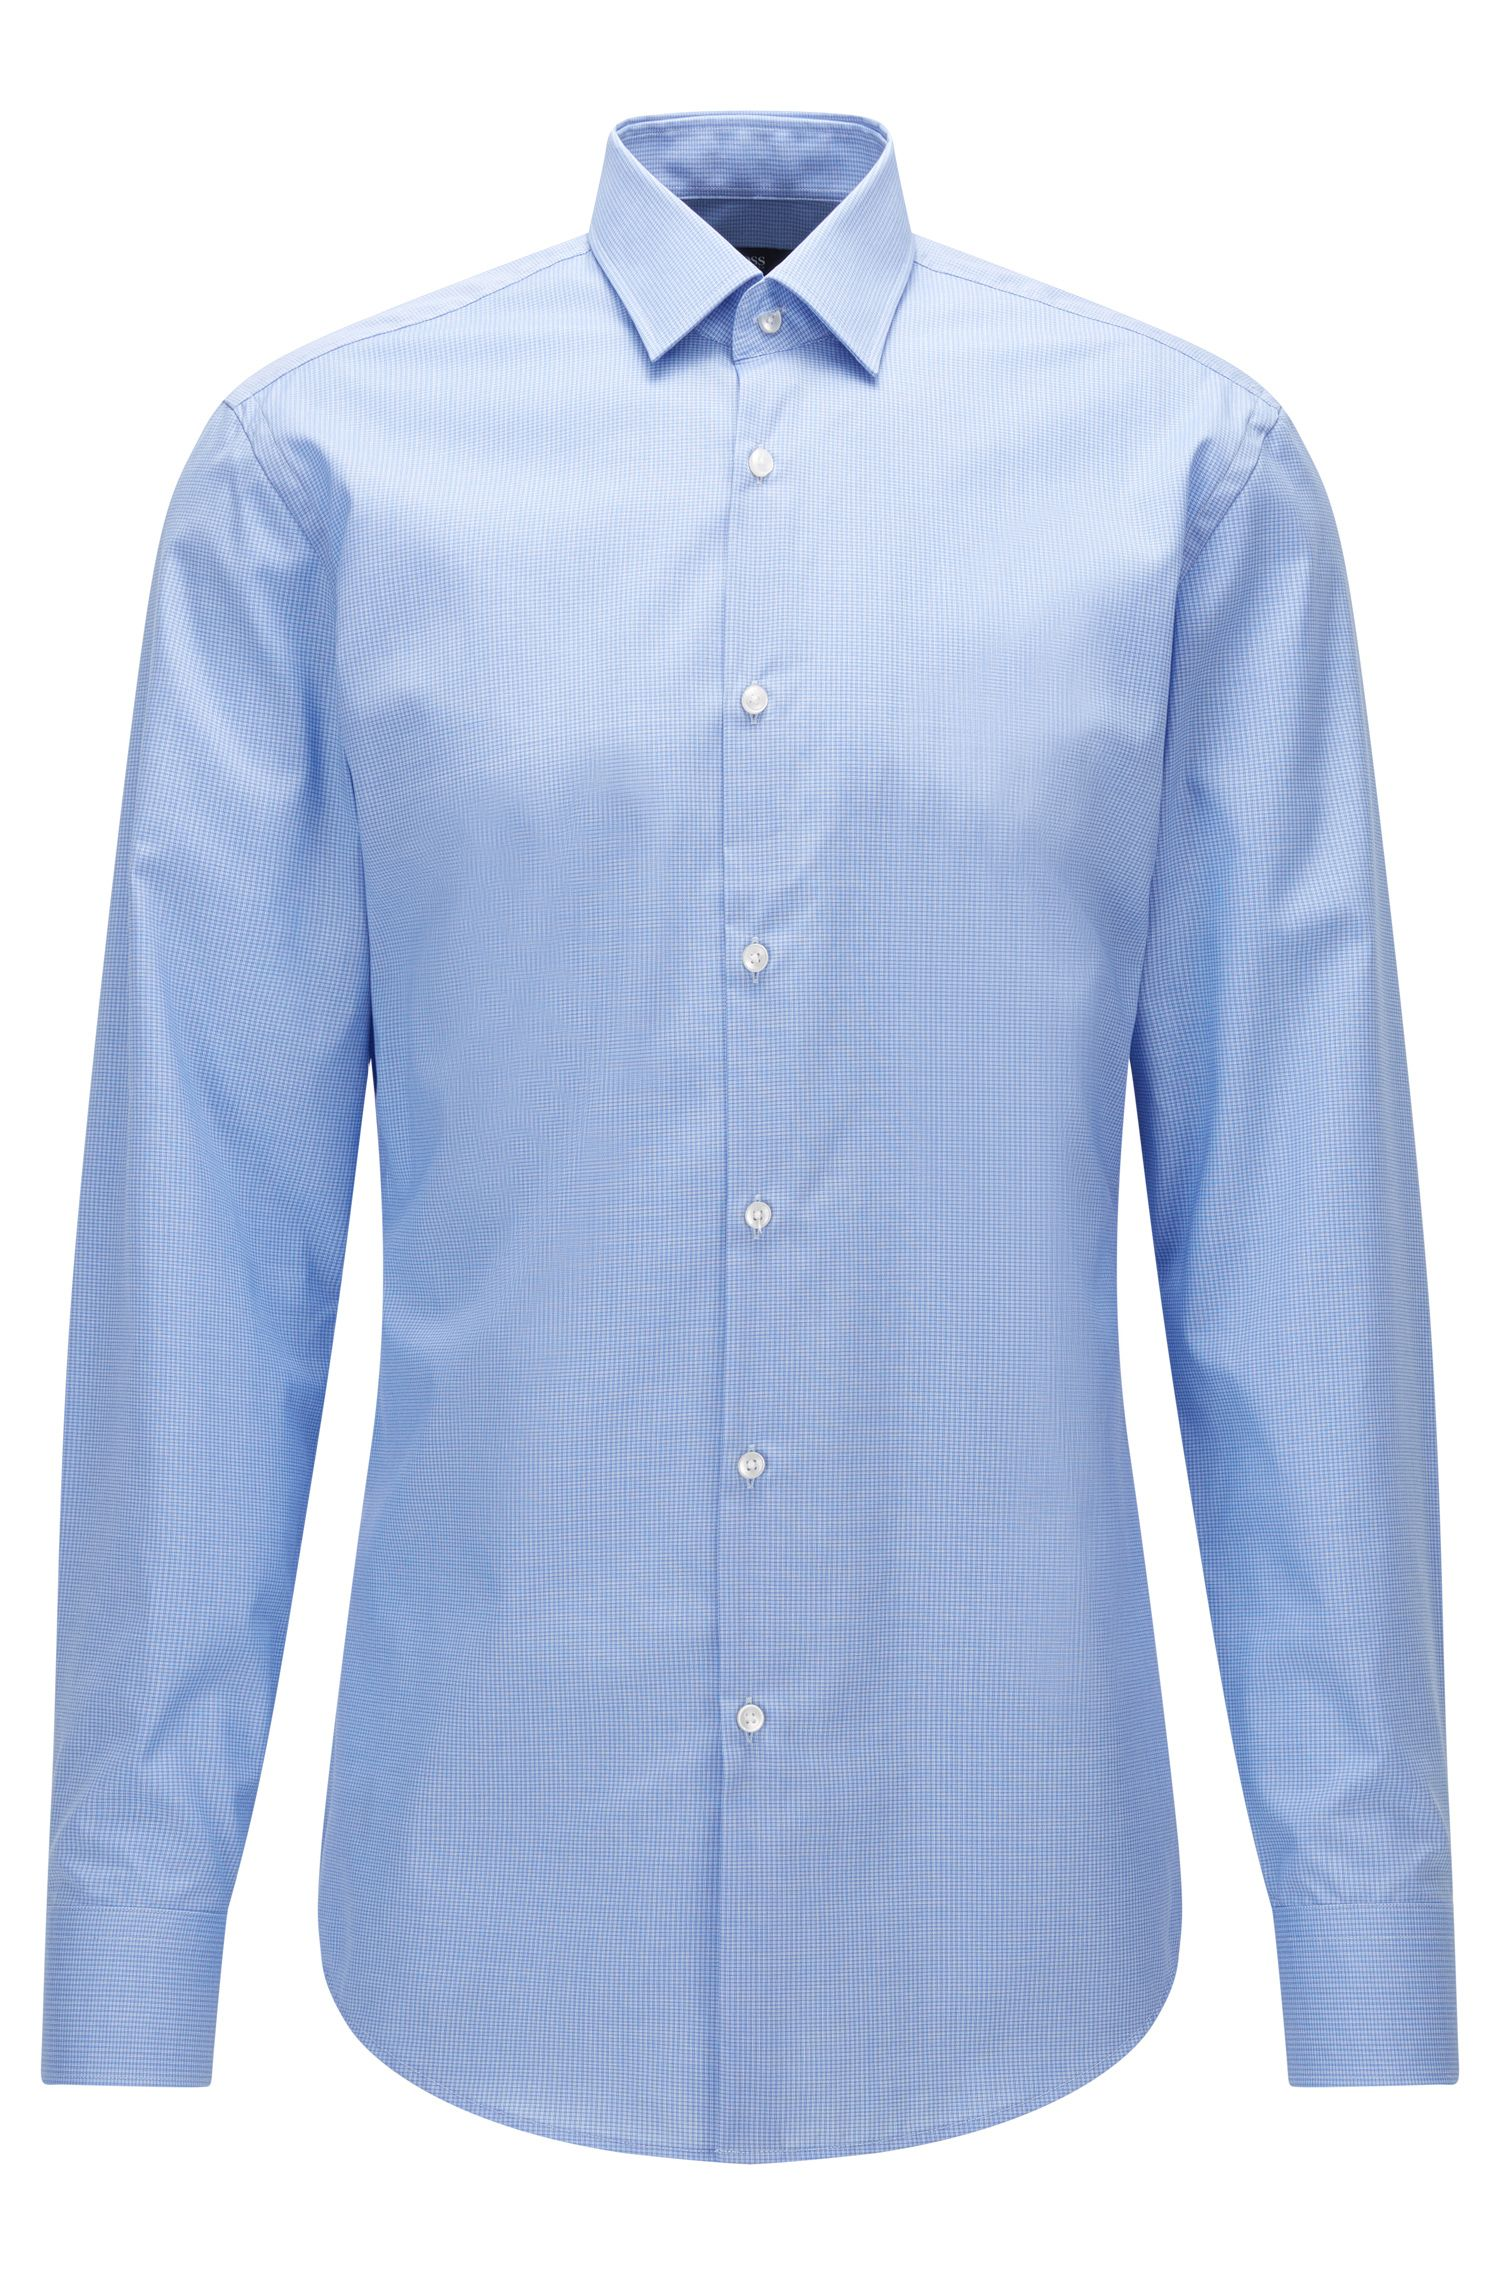 Slim-fit shirt in patterned cotton poplin